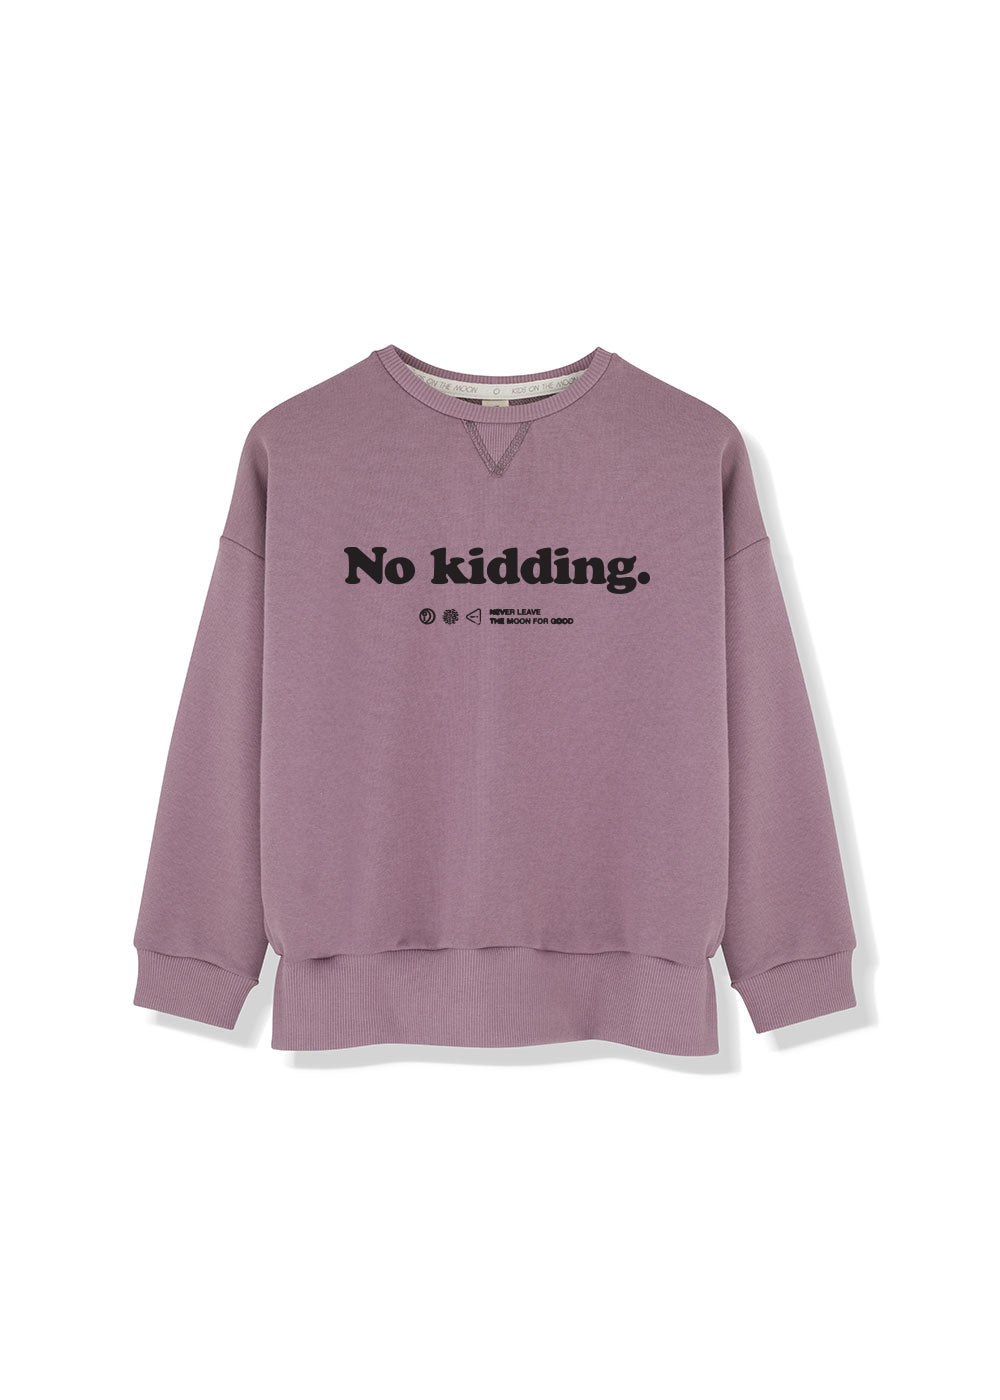 NO KIDDING Sweatshirt